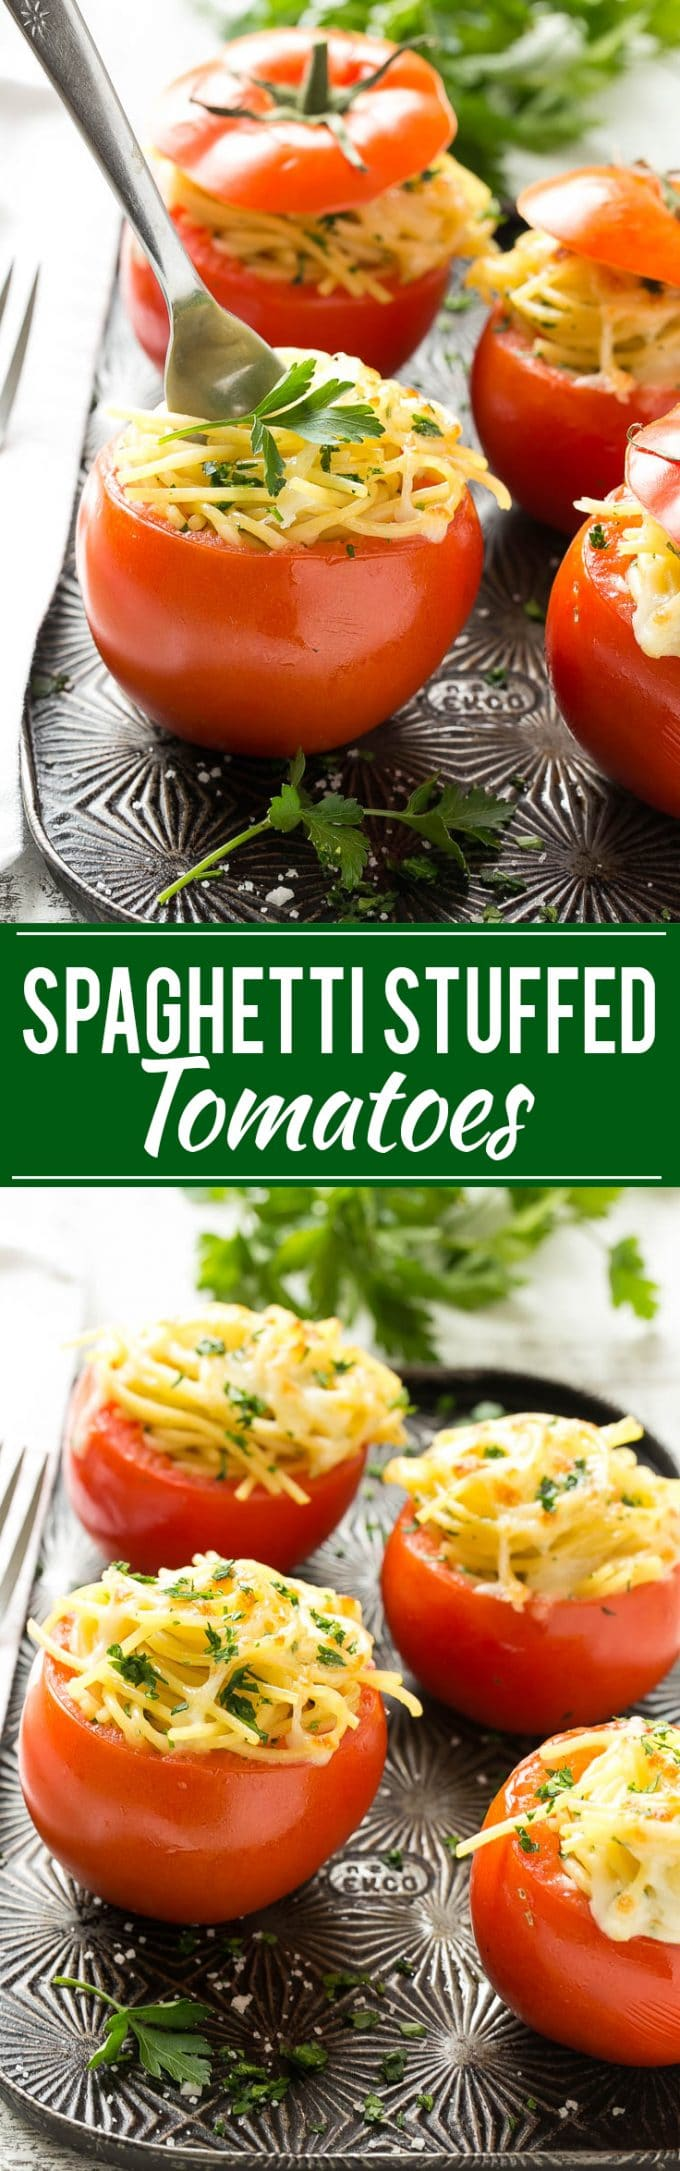 Easy Baked Stuffed Tomatoes Recipe | Baked Tomatoes Stuffed With Spaghetti | Spaghetti Stuffed Tomatoes | Baked Stuffed Tomatoes | Spaghetti in a Tomato Bowl | Spaghetti Stuffed Tomatoes